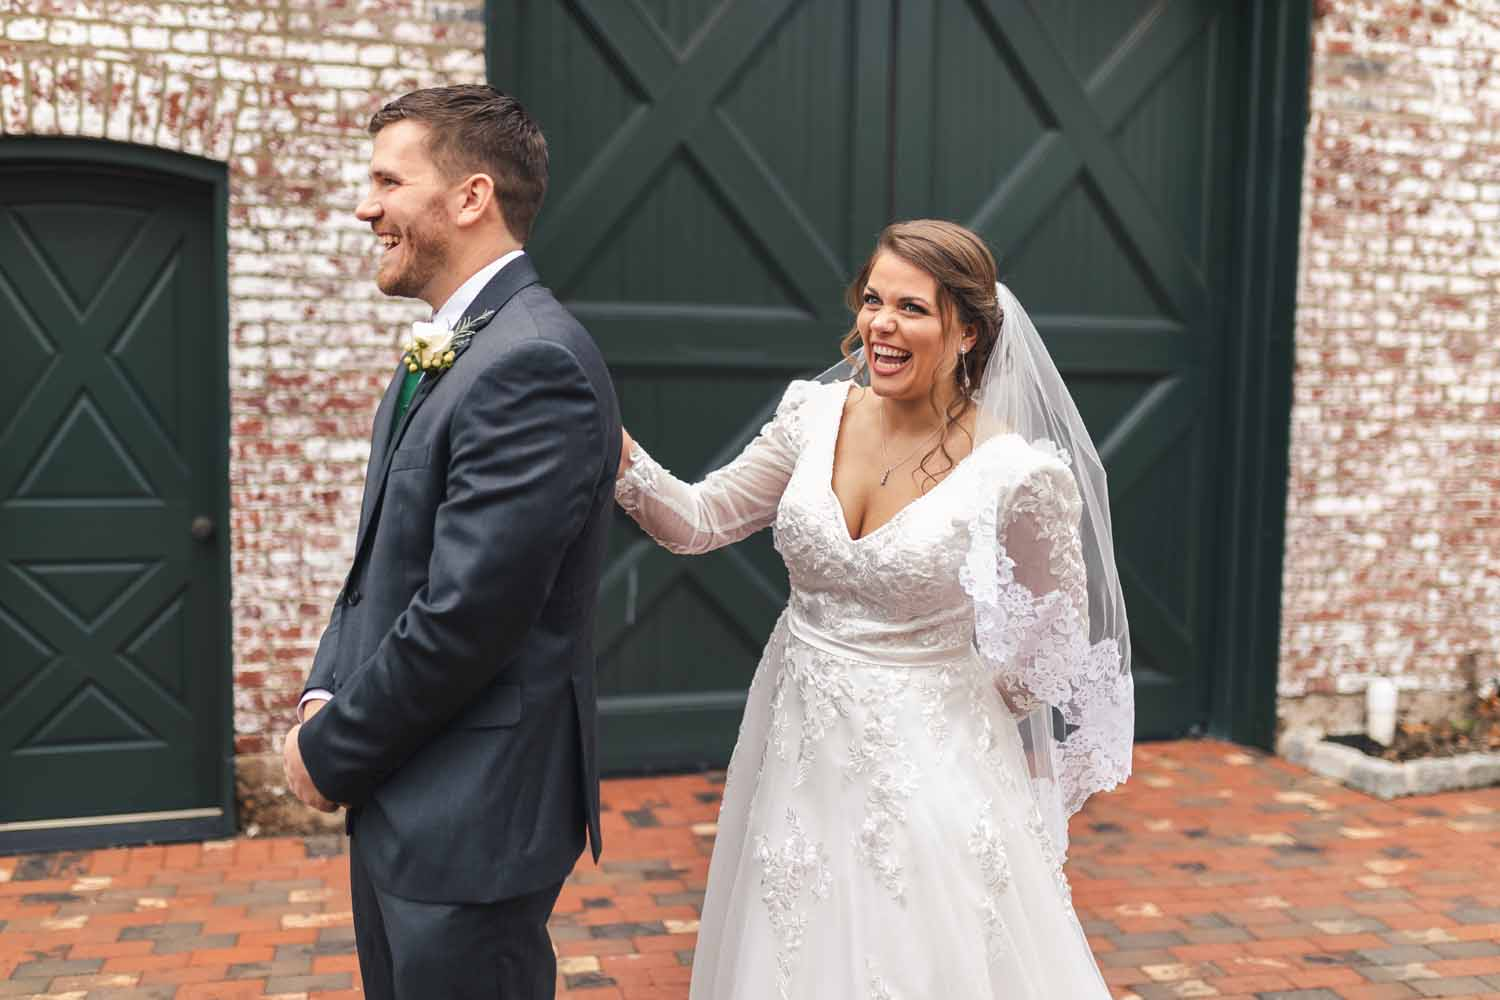 Bride laughing right before groom turns around to see bride for first time